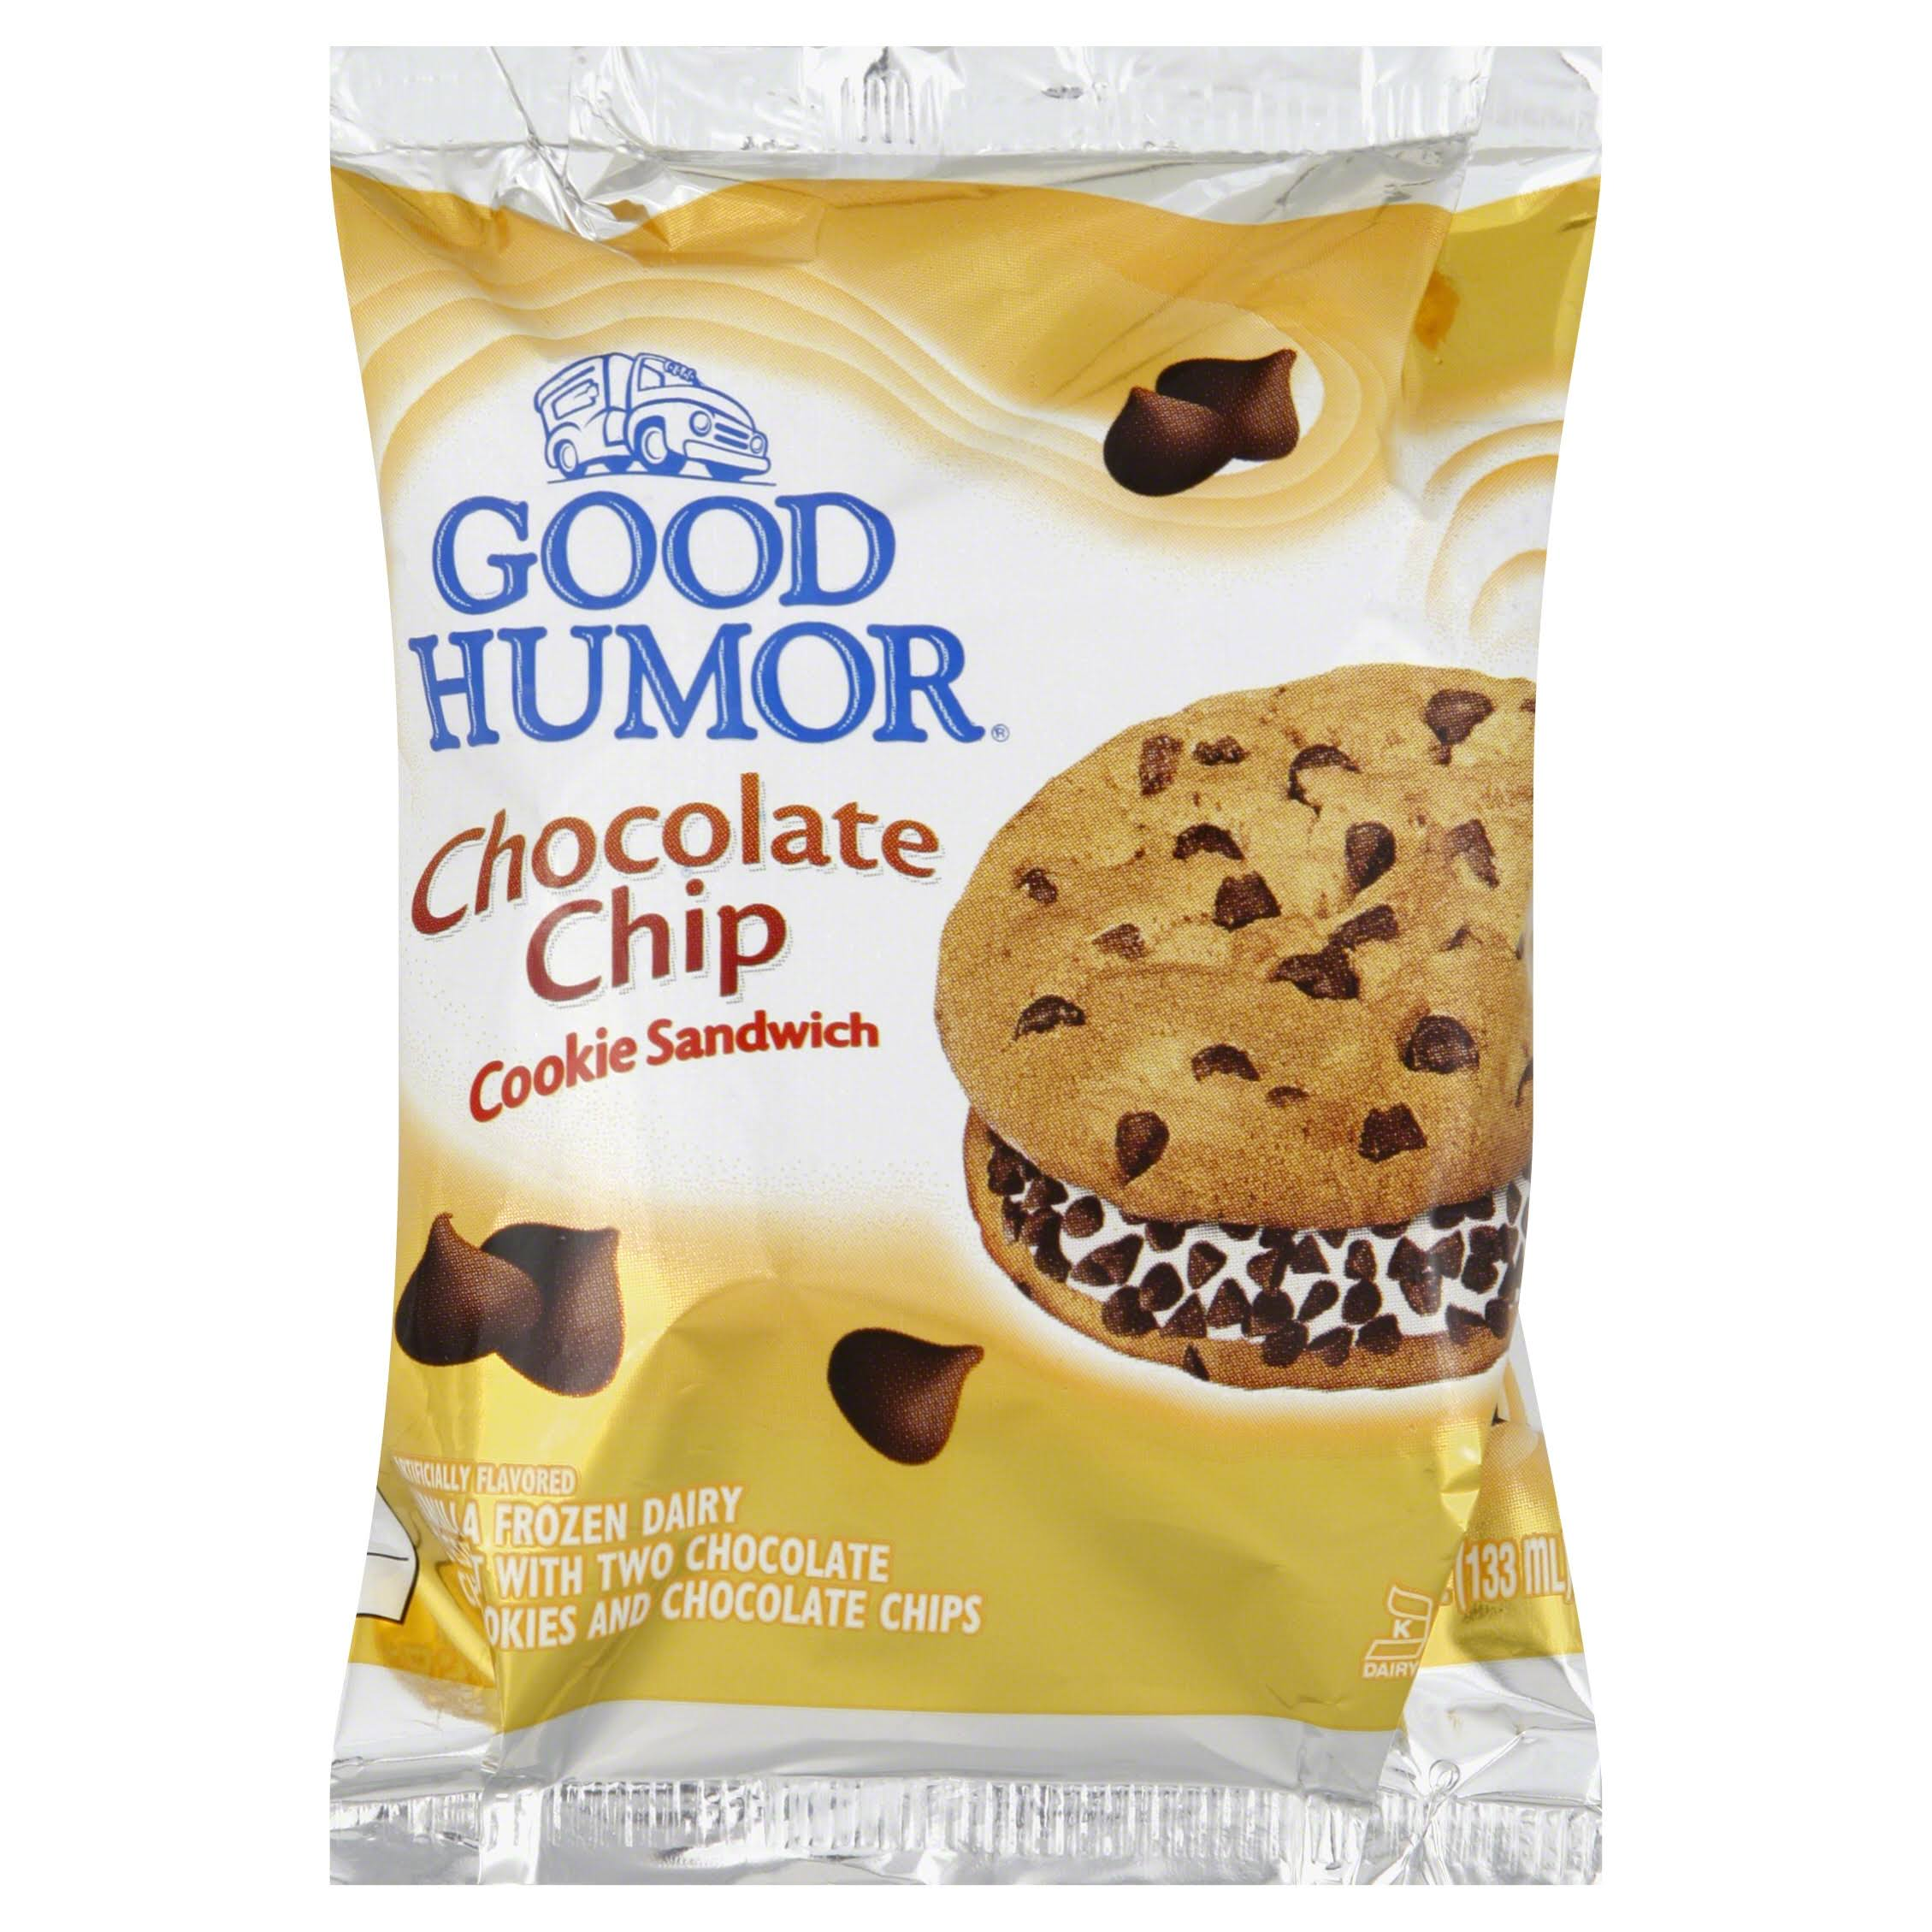 Good Humor Chocolate Chip Cookie Sandwich - 4.5oz